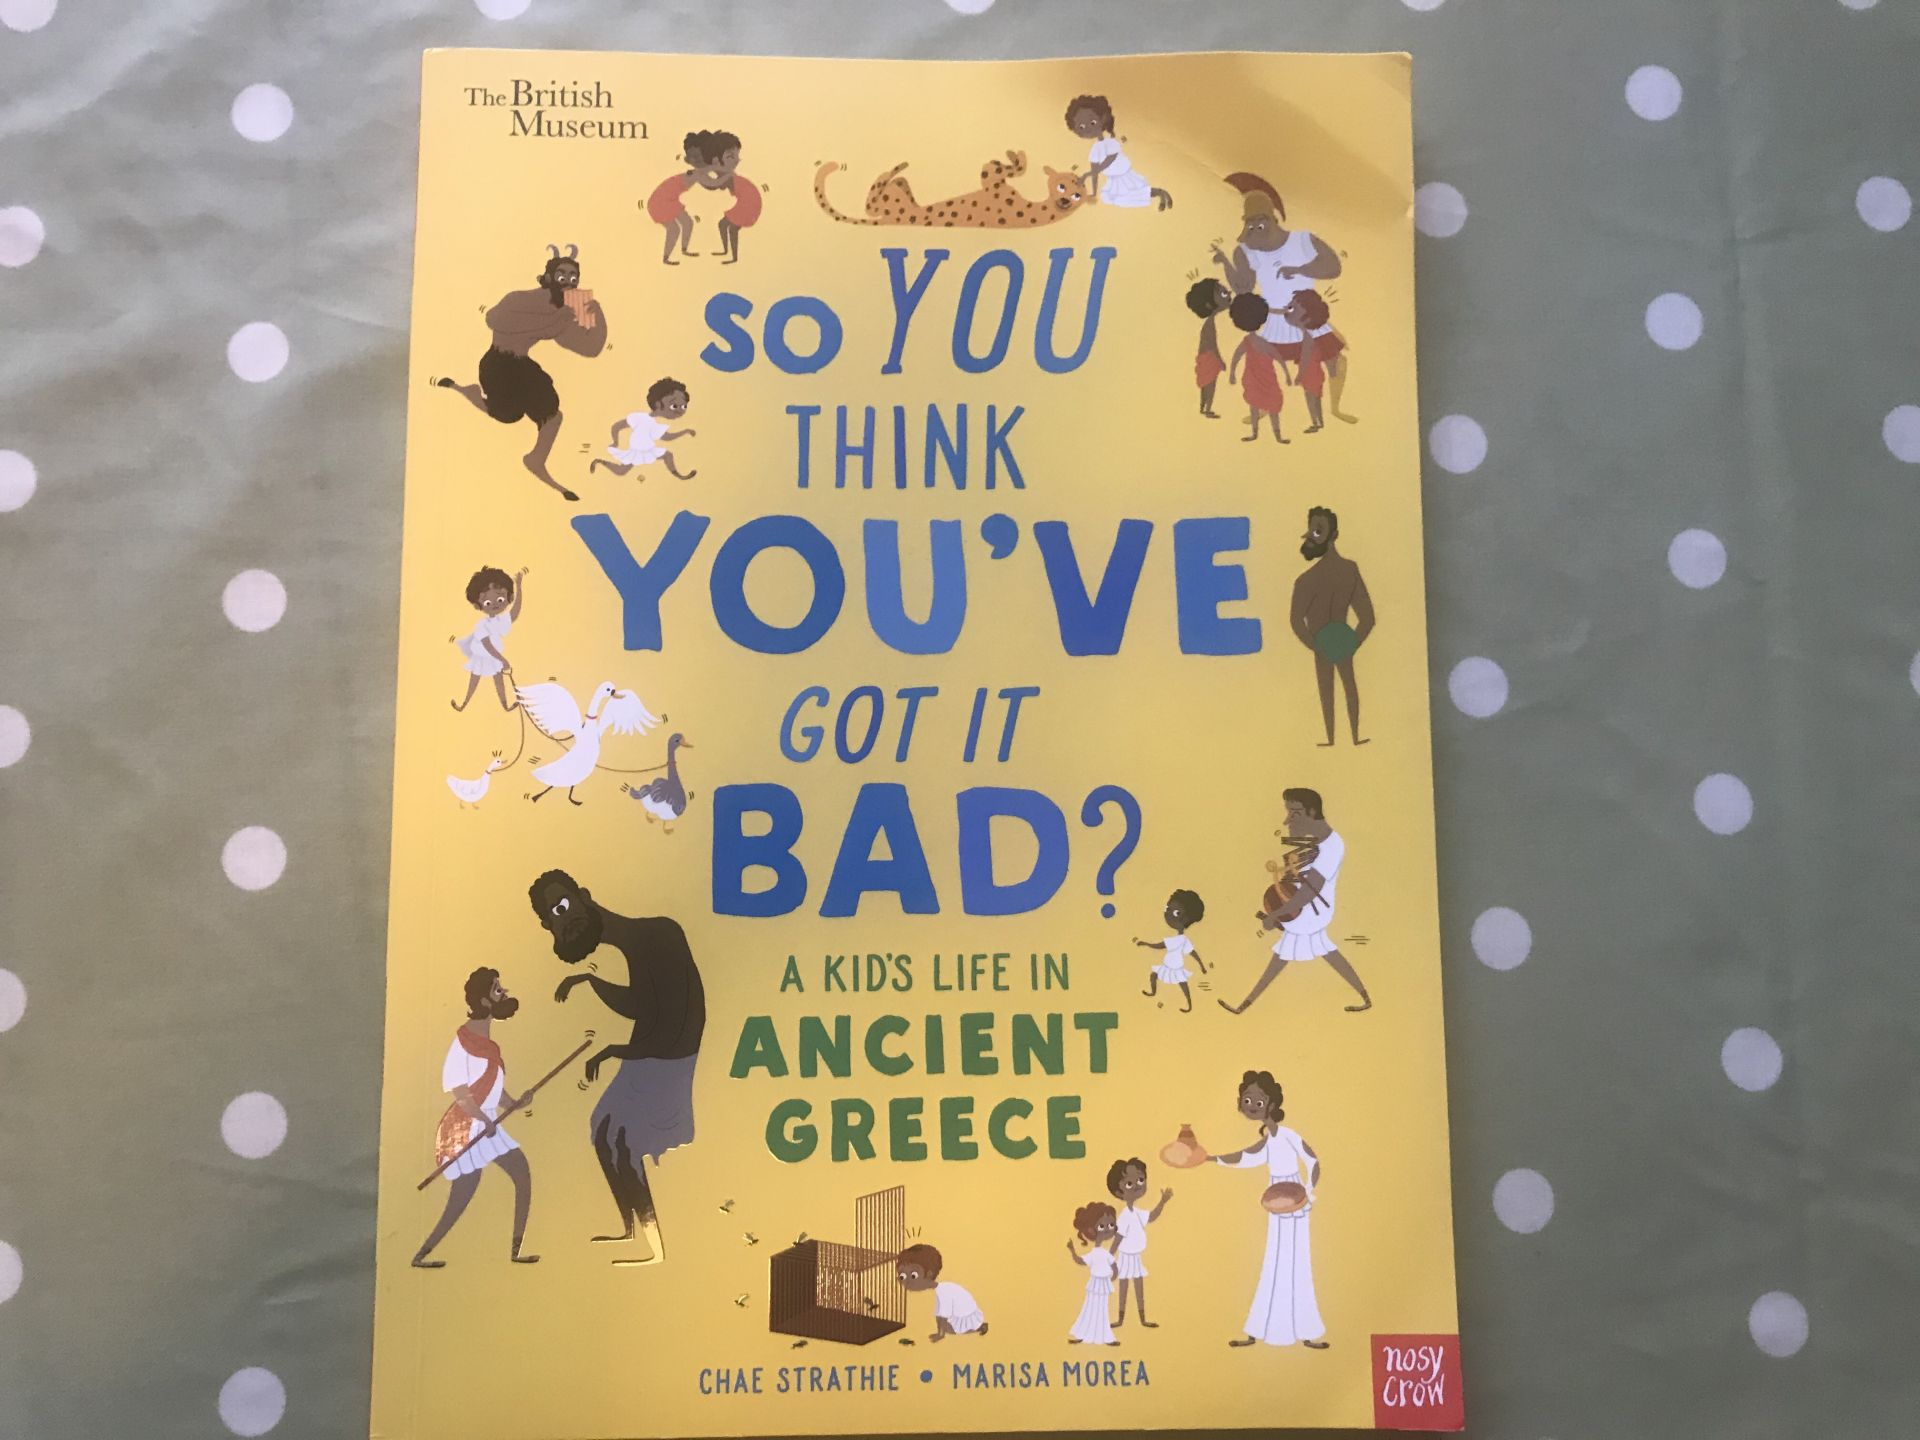 So you think you've got it bad book